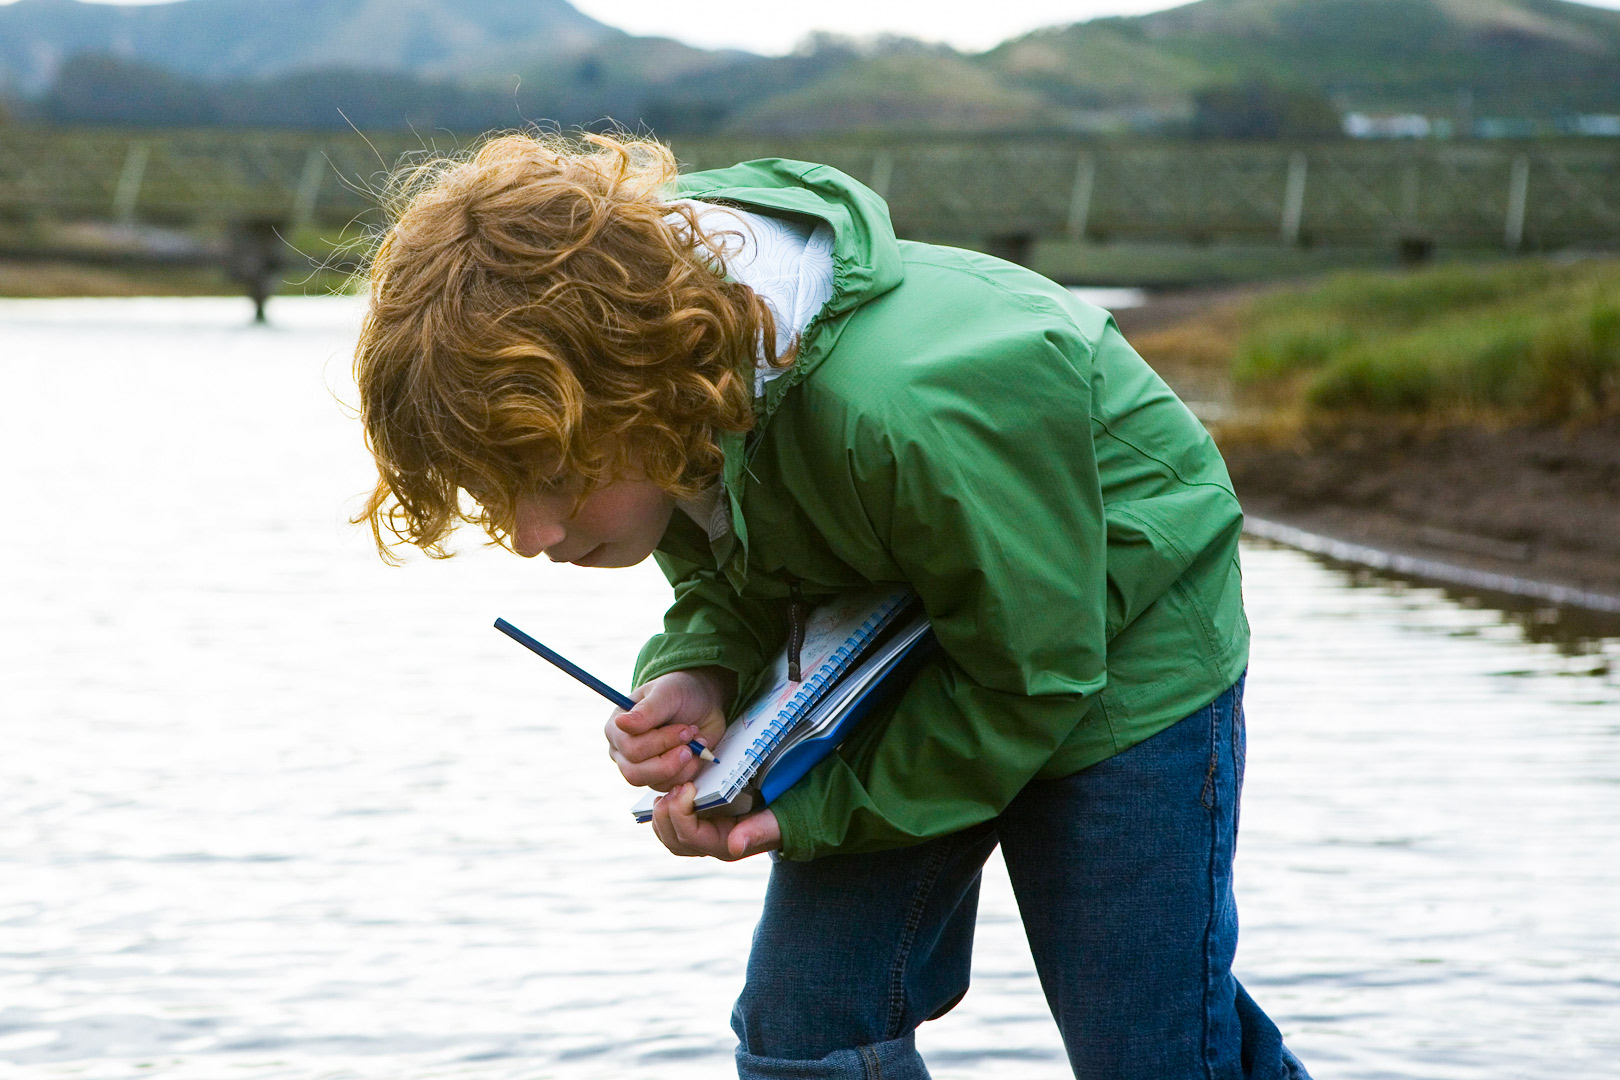 A young boy observing nature and writing things down in a notebook